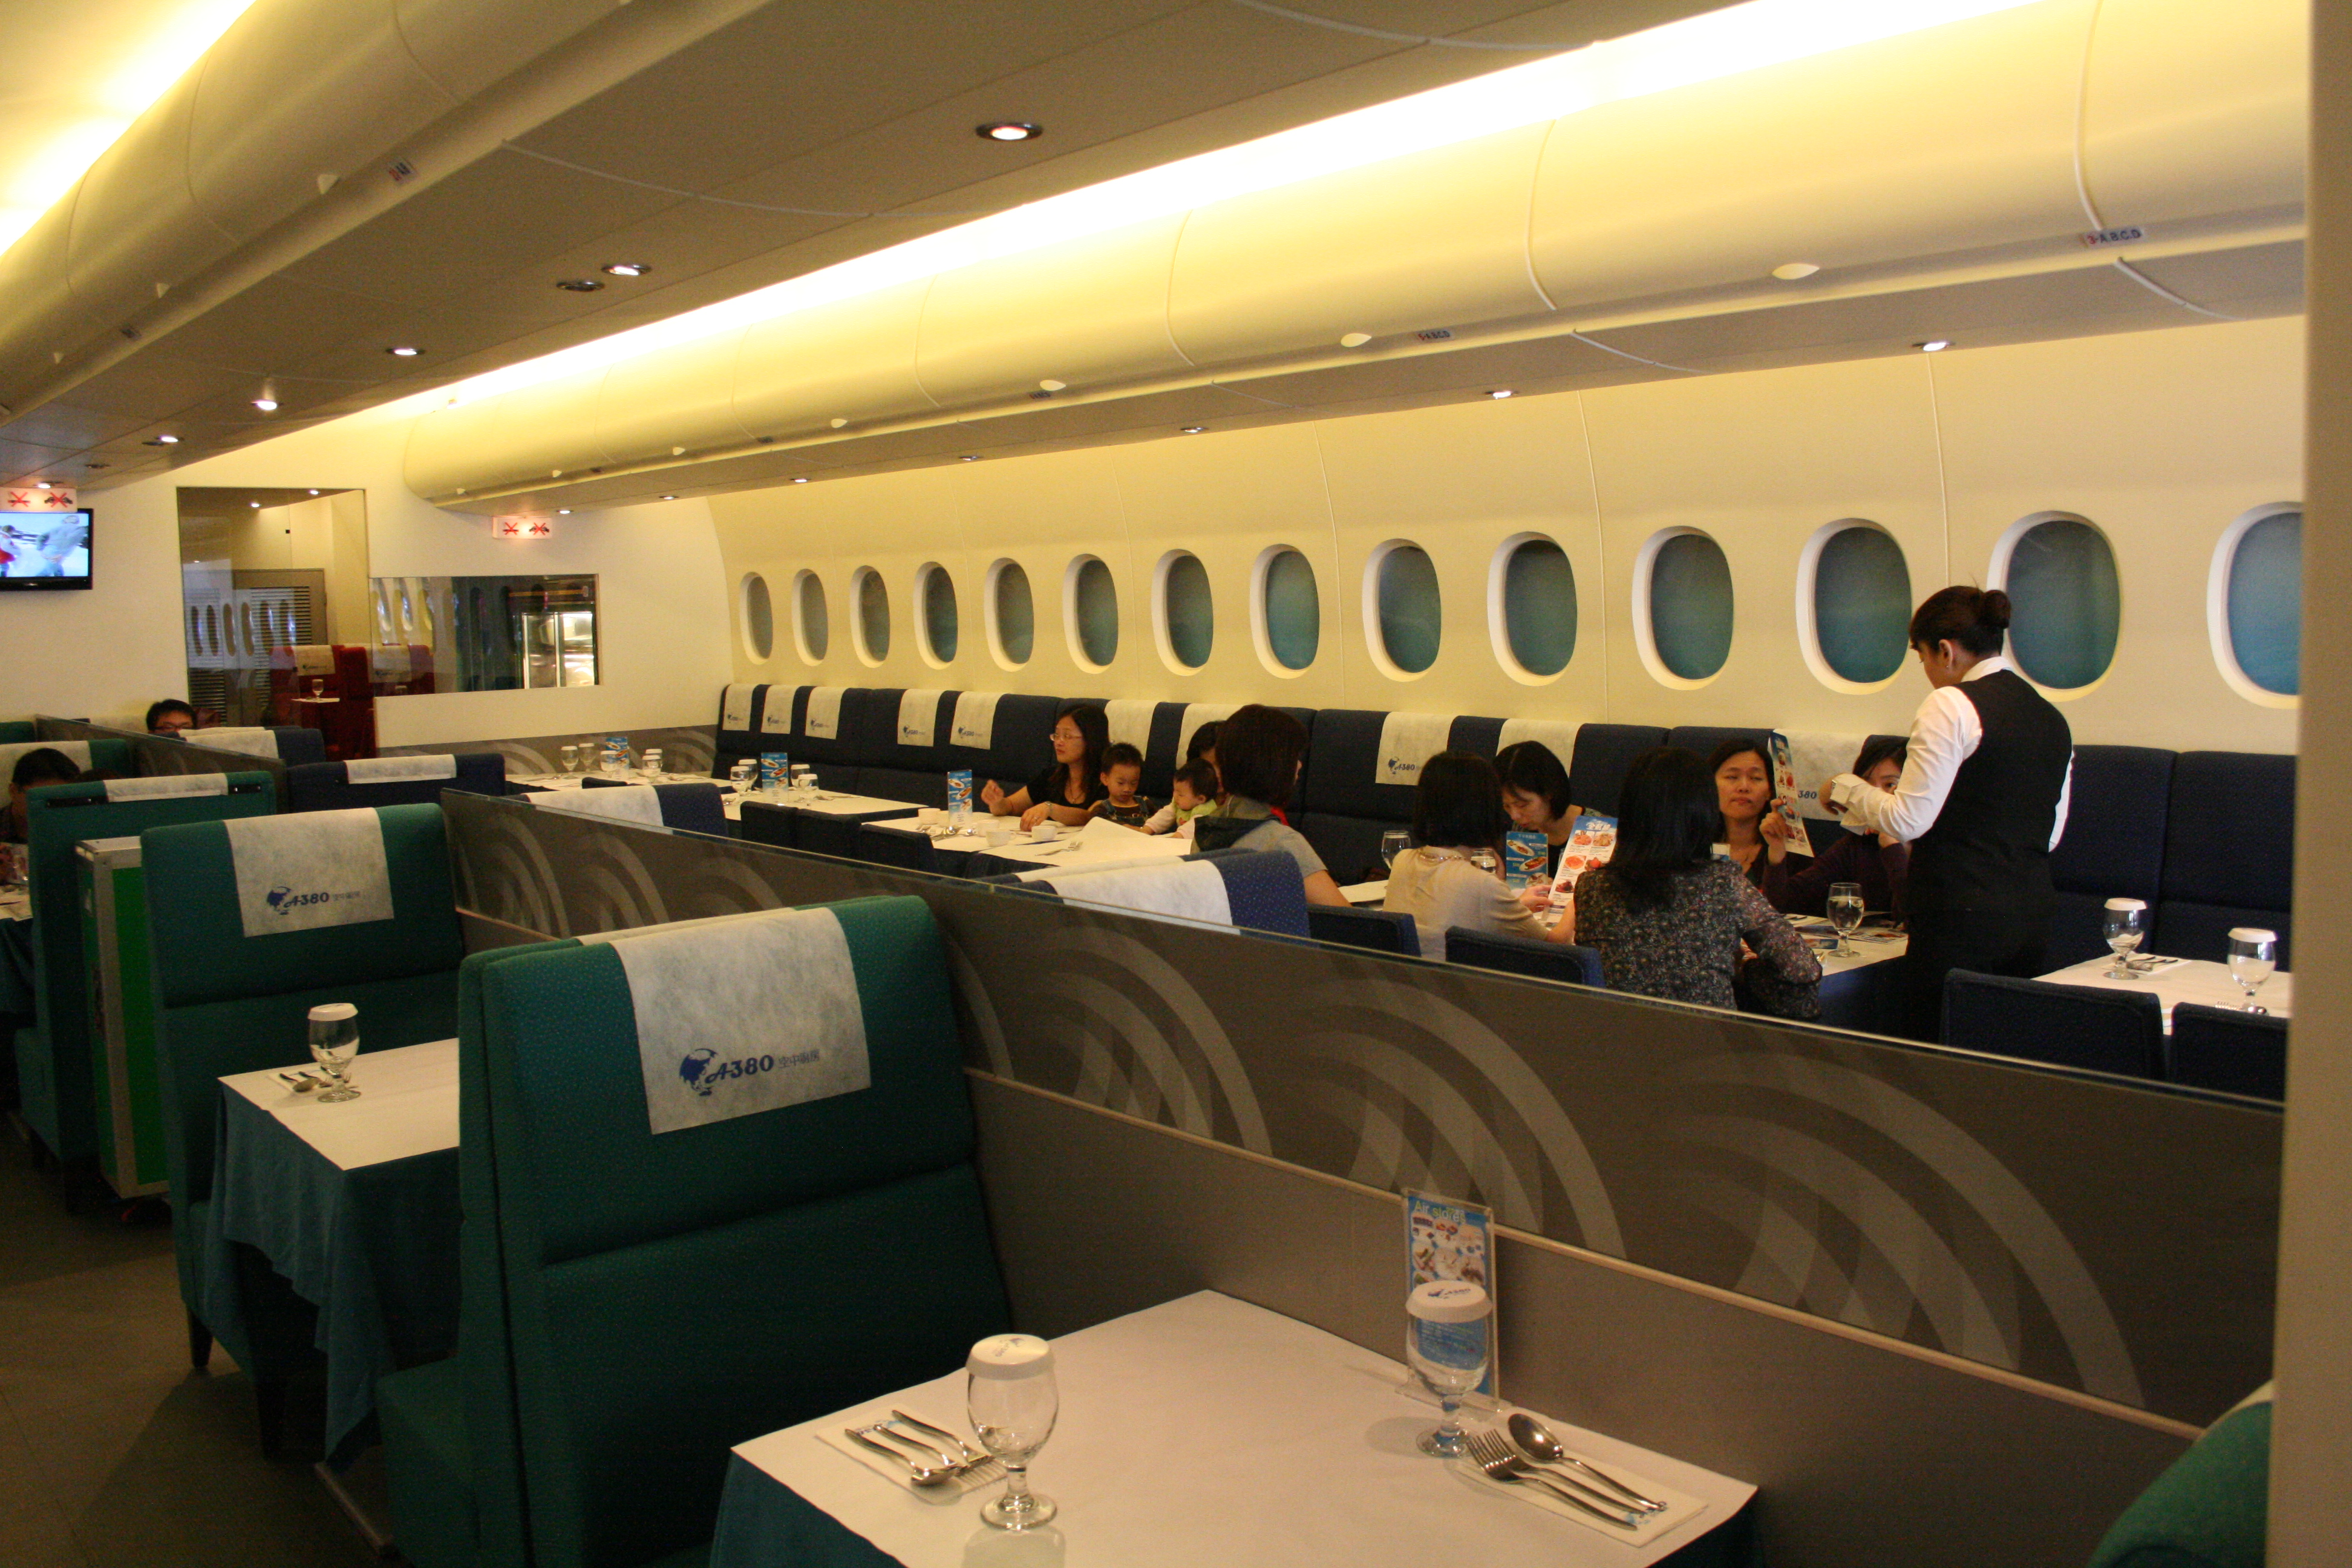 Airplane Themed Restaurant, Taiwan | Top 11 Themed Cafes